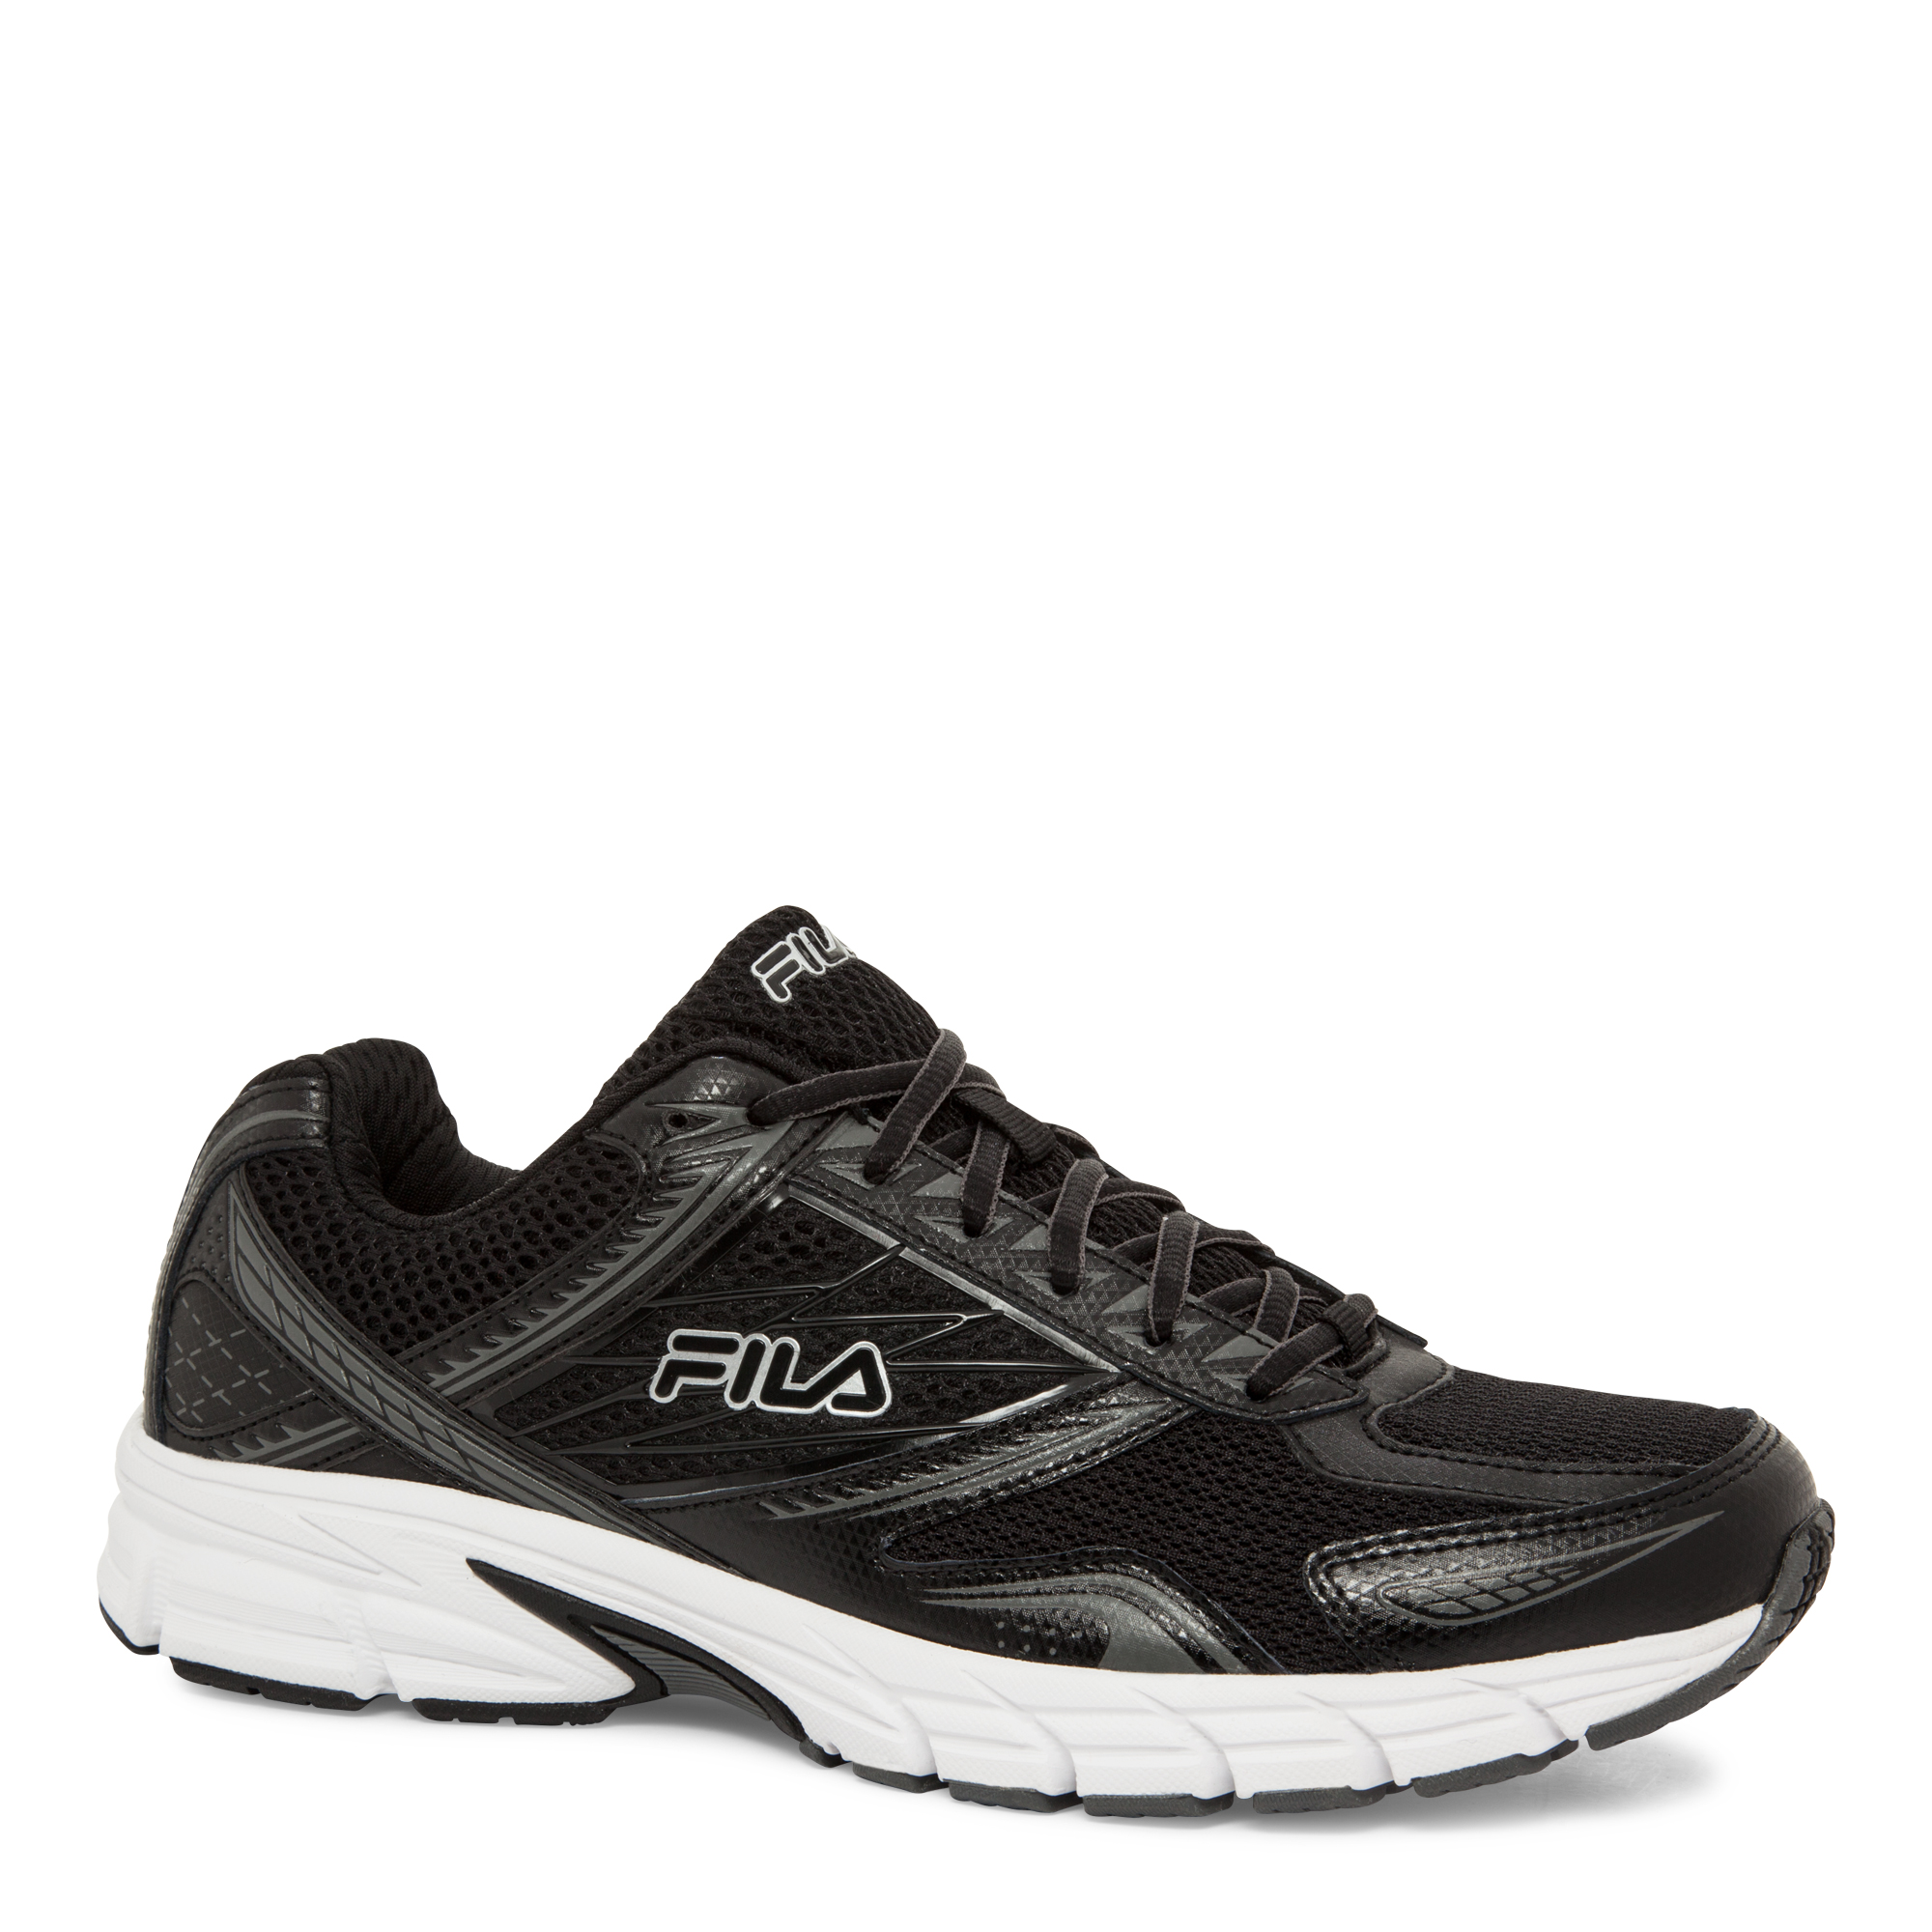 fila 2017 shoes. fila-men-039-s-royalty-2-running-shoe fila 2017 shoes